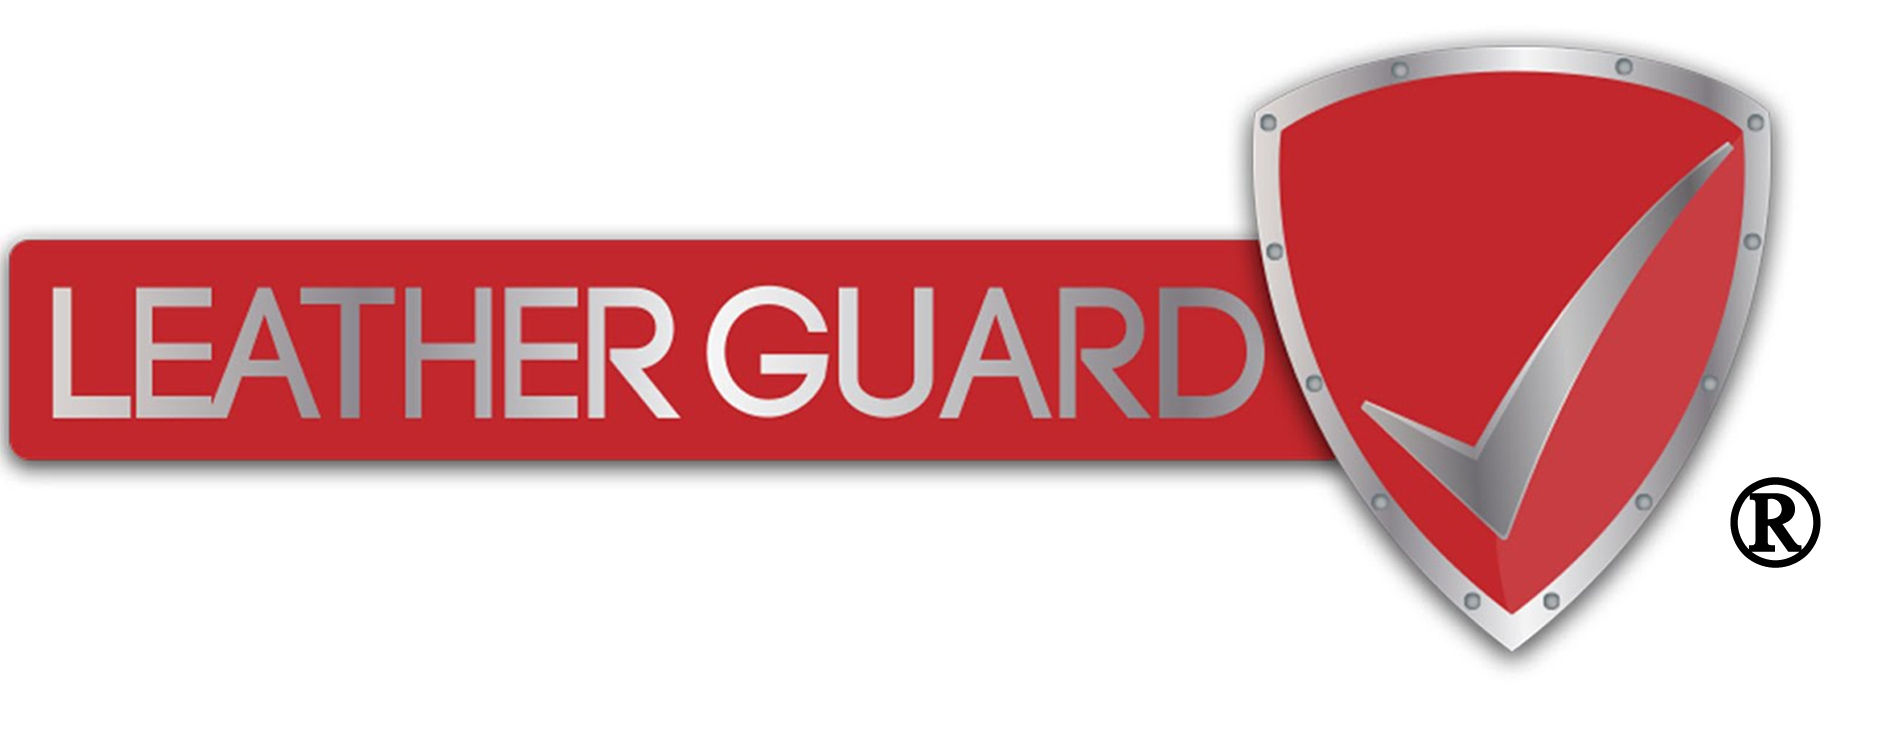 Leather Guard (TM) Launched By The Leather Repair Company Withernsea